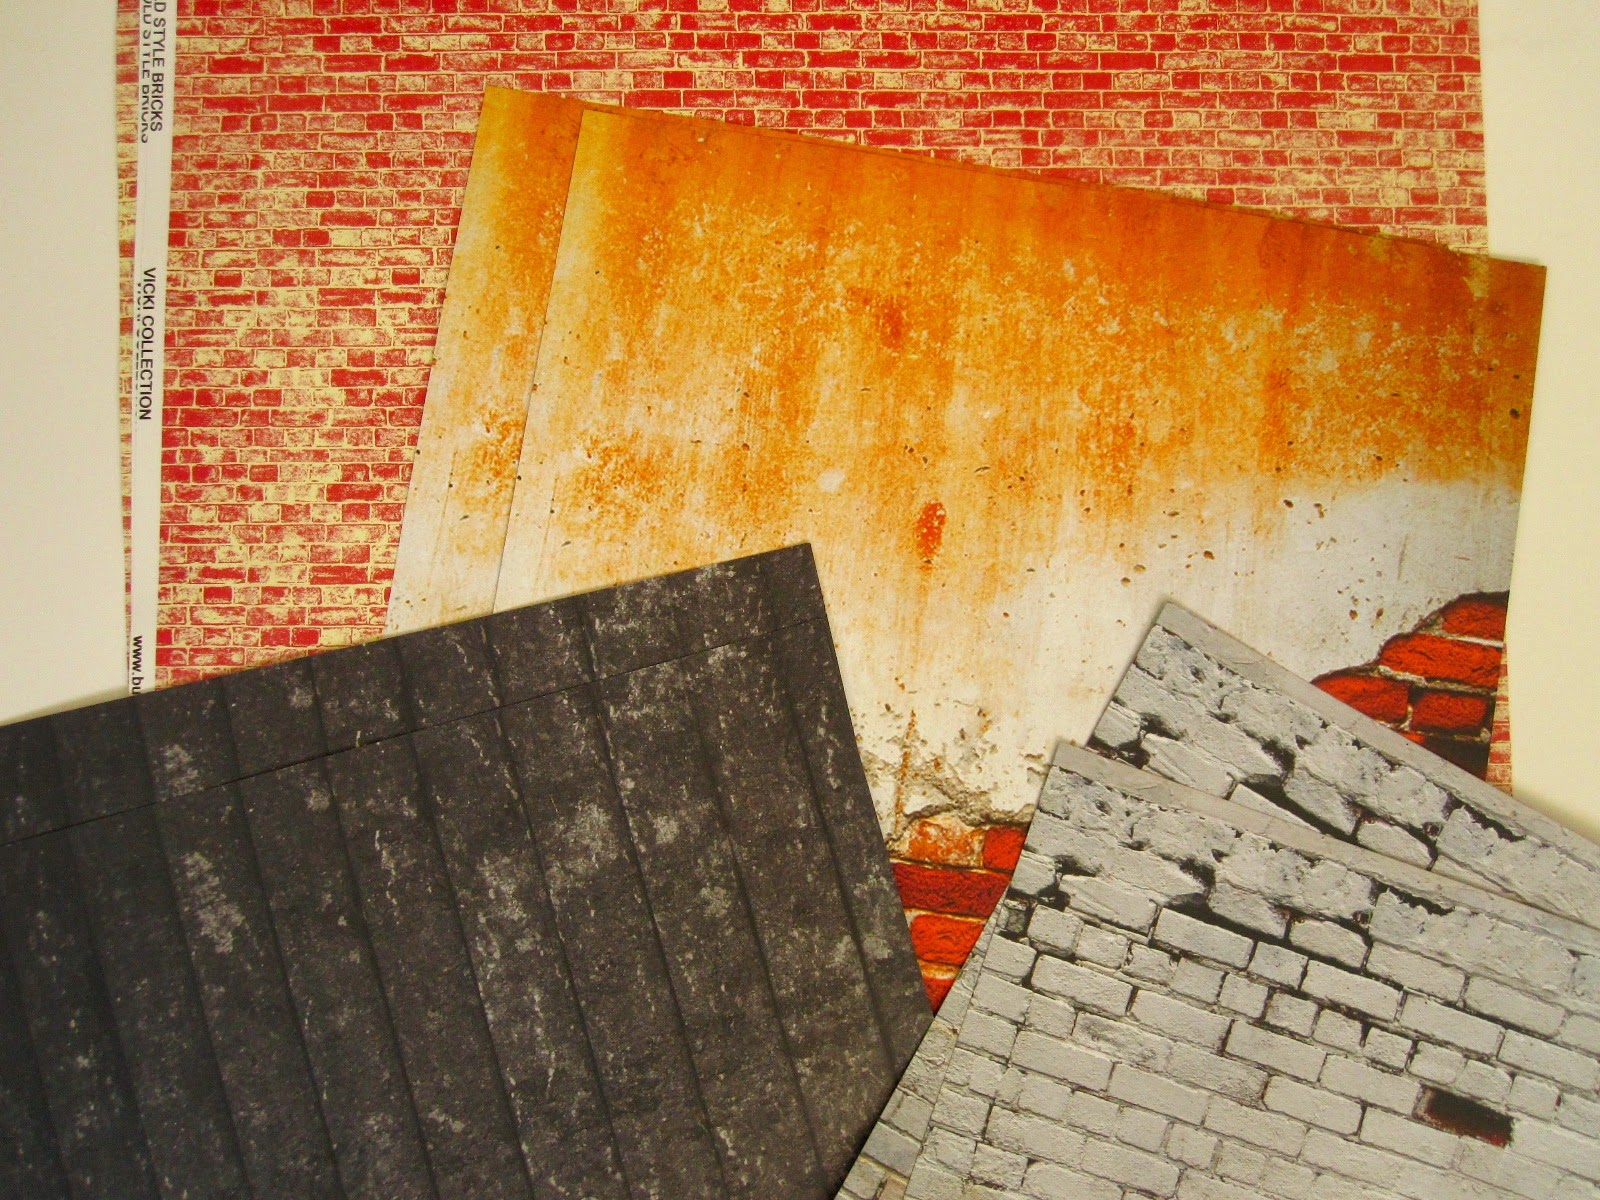 A selection of scrapbook paper sheets with distressed brick, plaster and wood patterns.